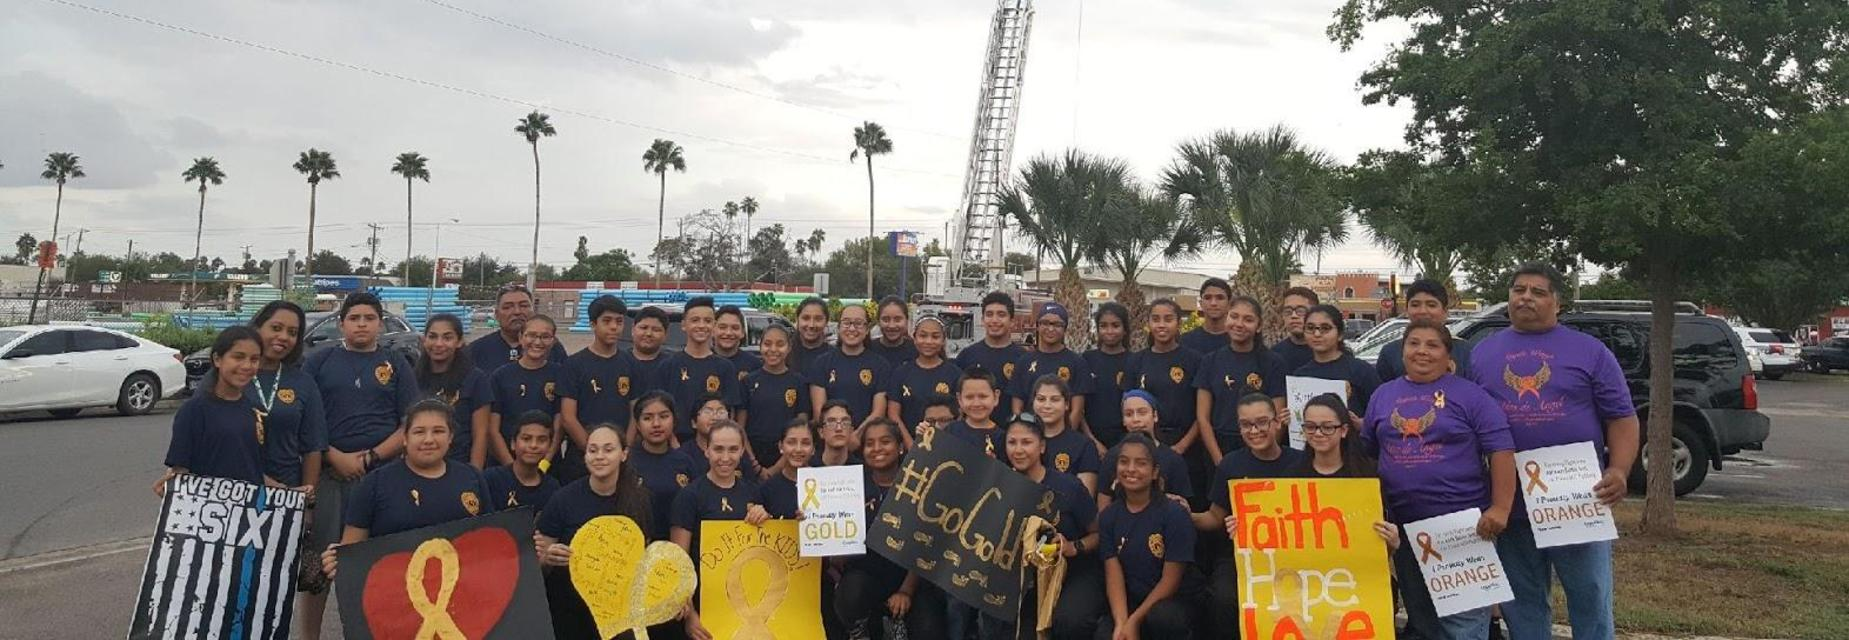 AMJH Jr Officers GO GOLD to bring awareness to Childhood Cancer